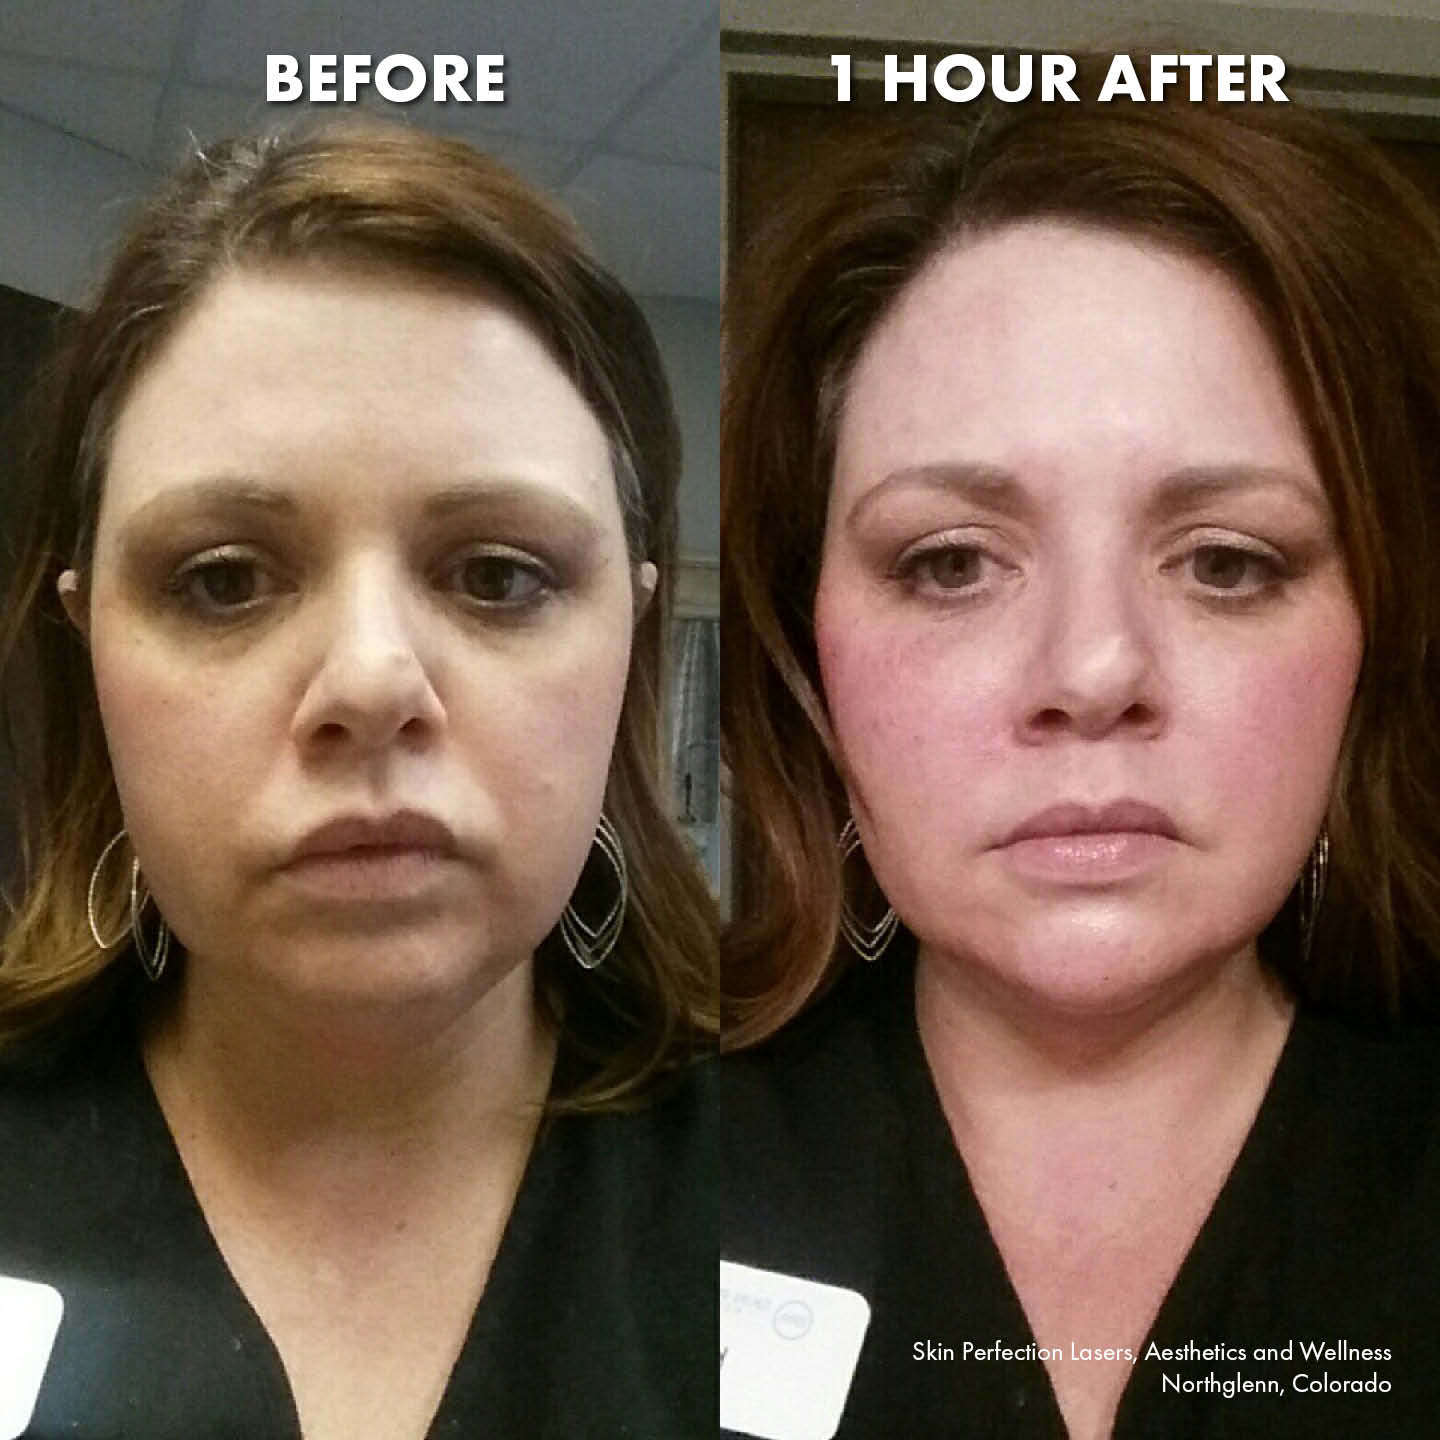 "DO YOU WANT TO LOOK 10 YEARS YOUNGER? - Check out these unedited results of our famous ""Liquid Facelift"" from one of our very own estheticians, Kate. One hour after her treatment, her face was visibly lifted, fine lines were diminished and her skin was overall more youthful-looking!Call us at 720-502-6168 to schedule your free Liquid Facelift consultation."